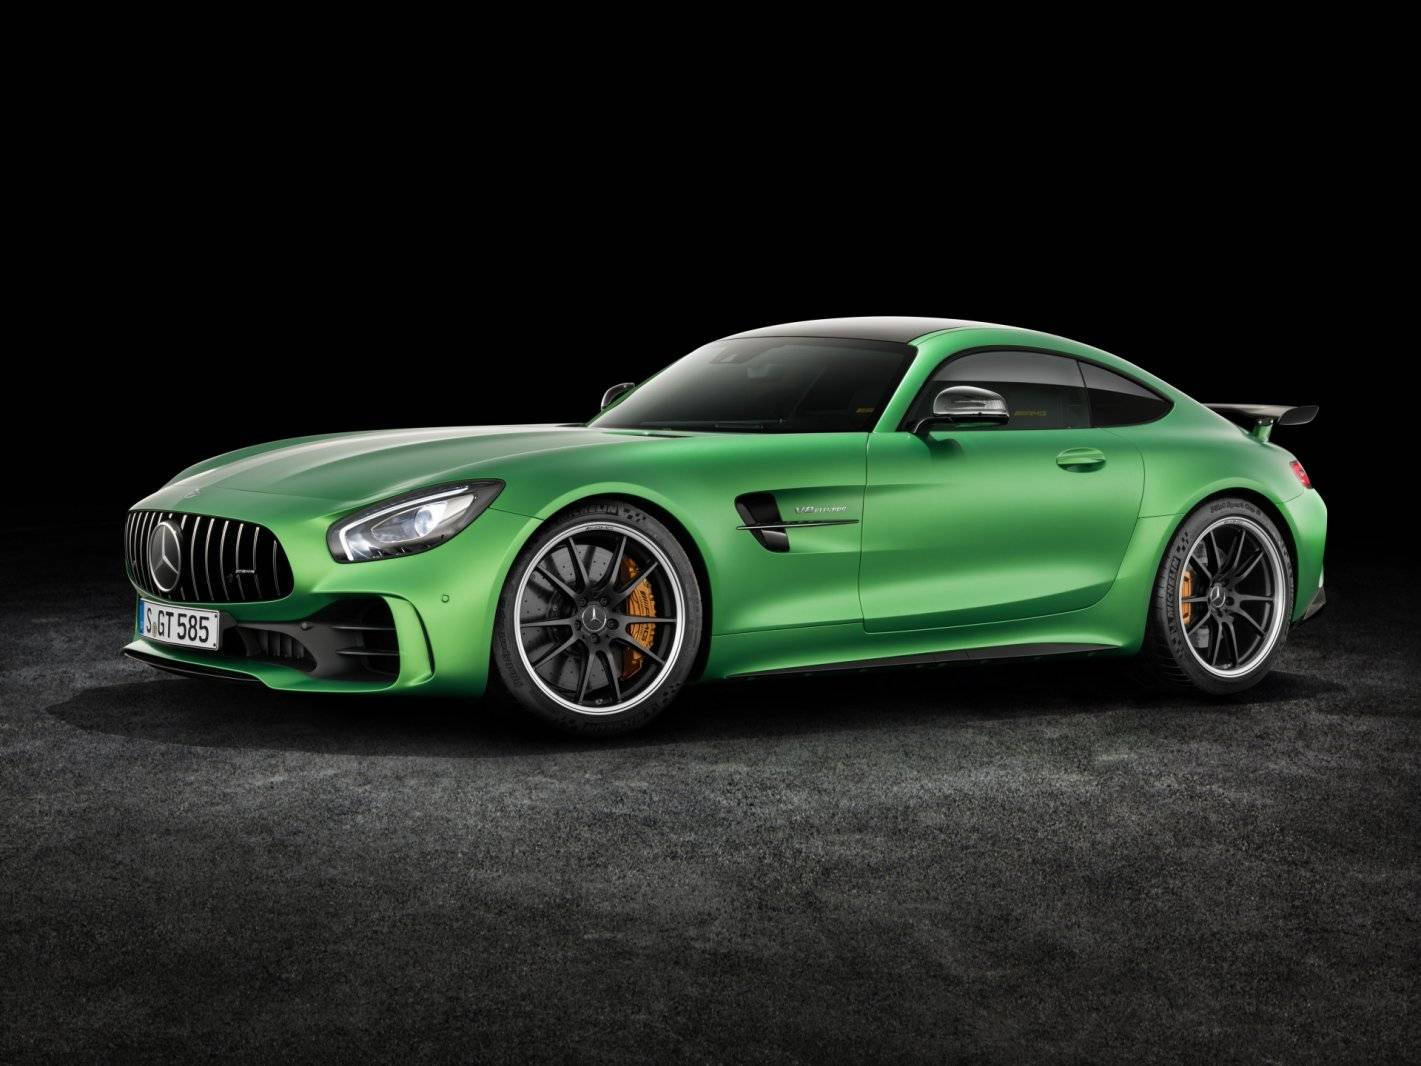 verbijsterende hulk mercedes amg gt r autonieuws. Black Bedroom Furniture Sets. Home Design Ideas